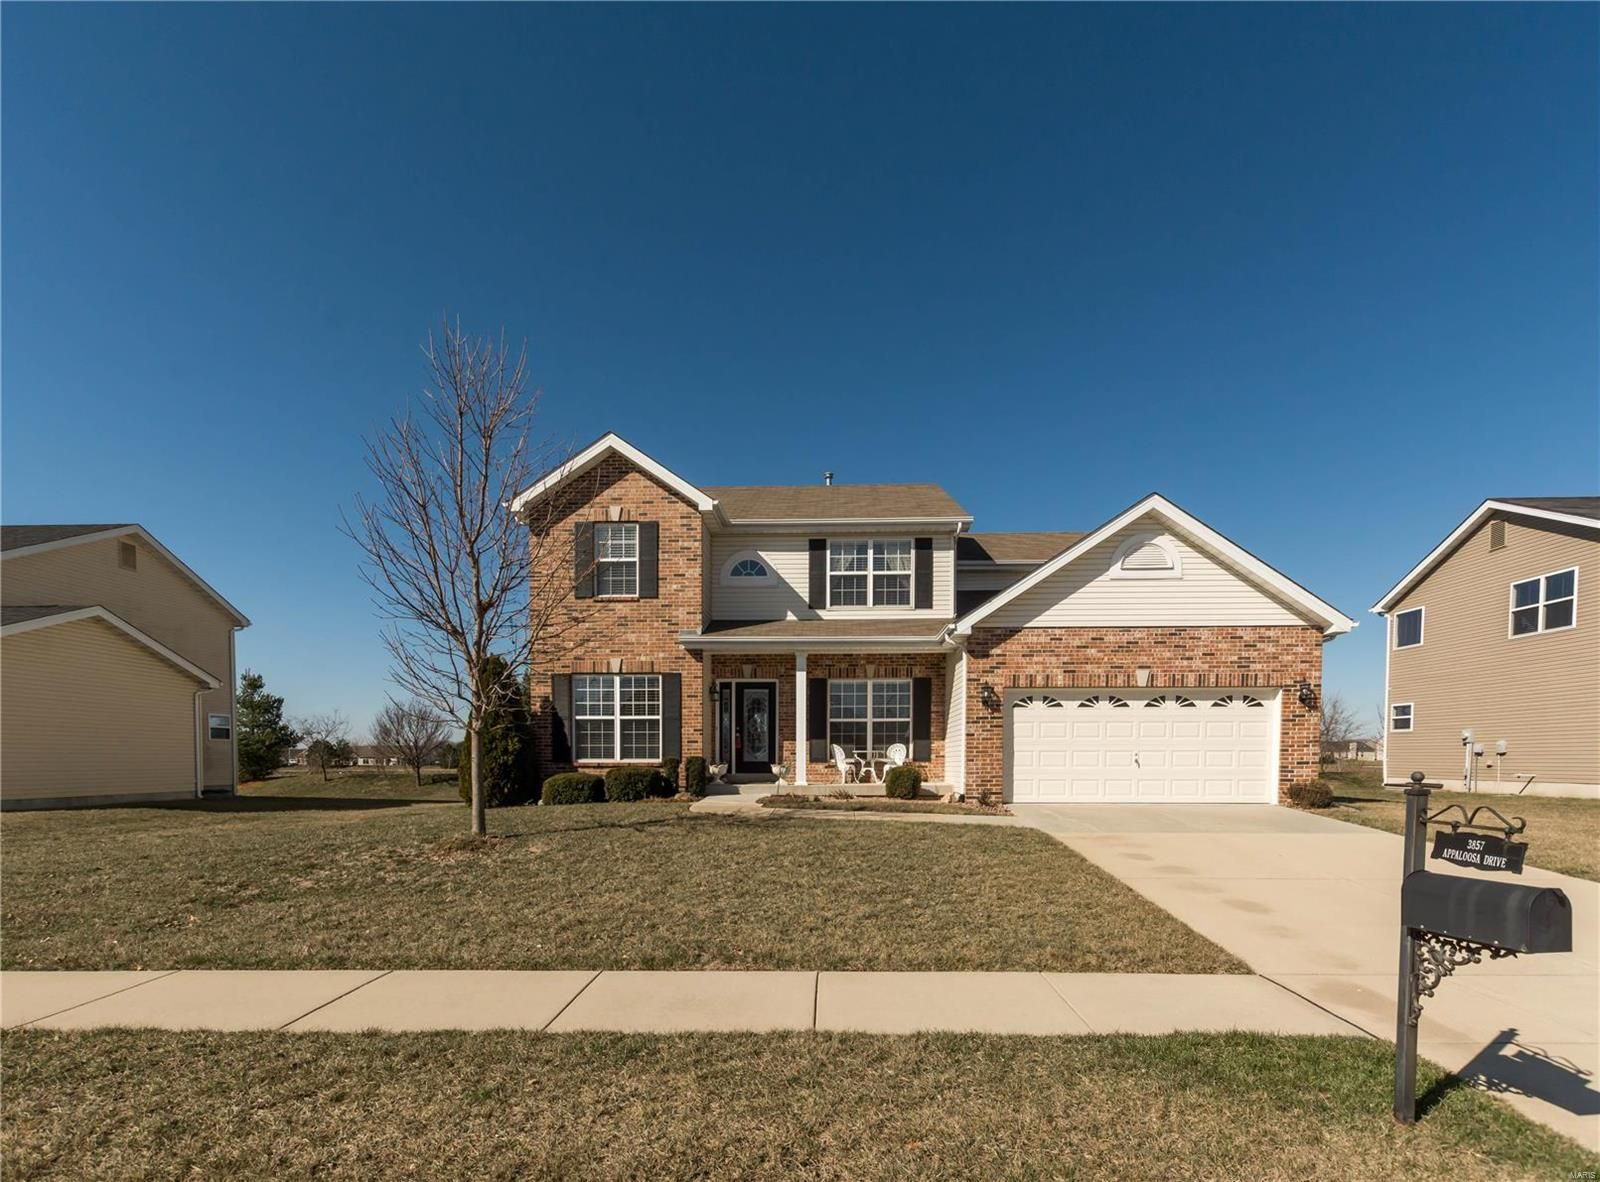 3857 Appaloosa Dr, Swansea, IL 62226 | Trulia